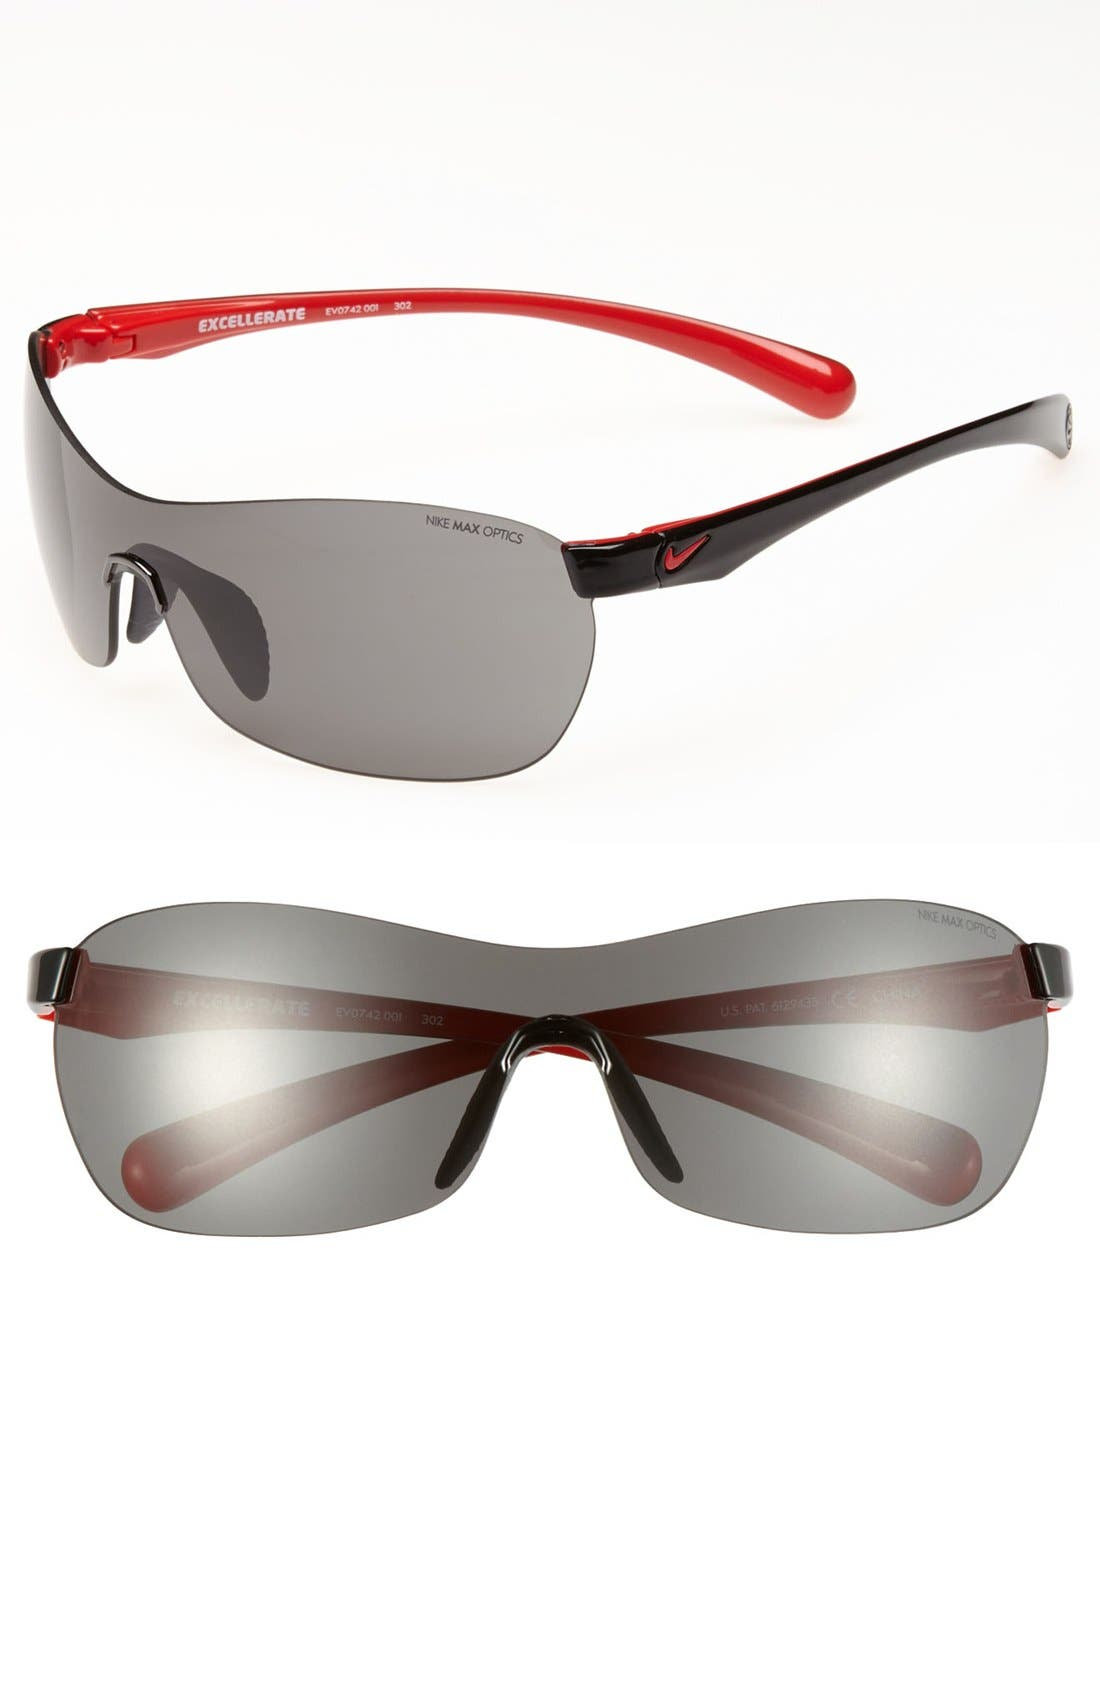 Alternate Image 1 Selected - Nike 'Excellerate' 62mm Sunglasses